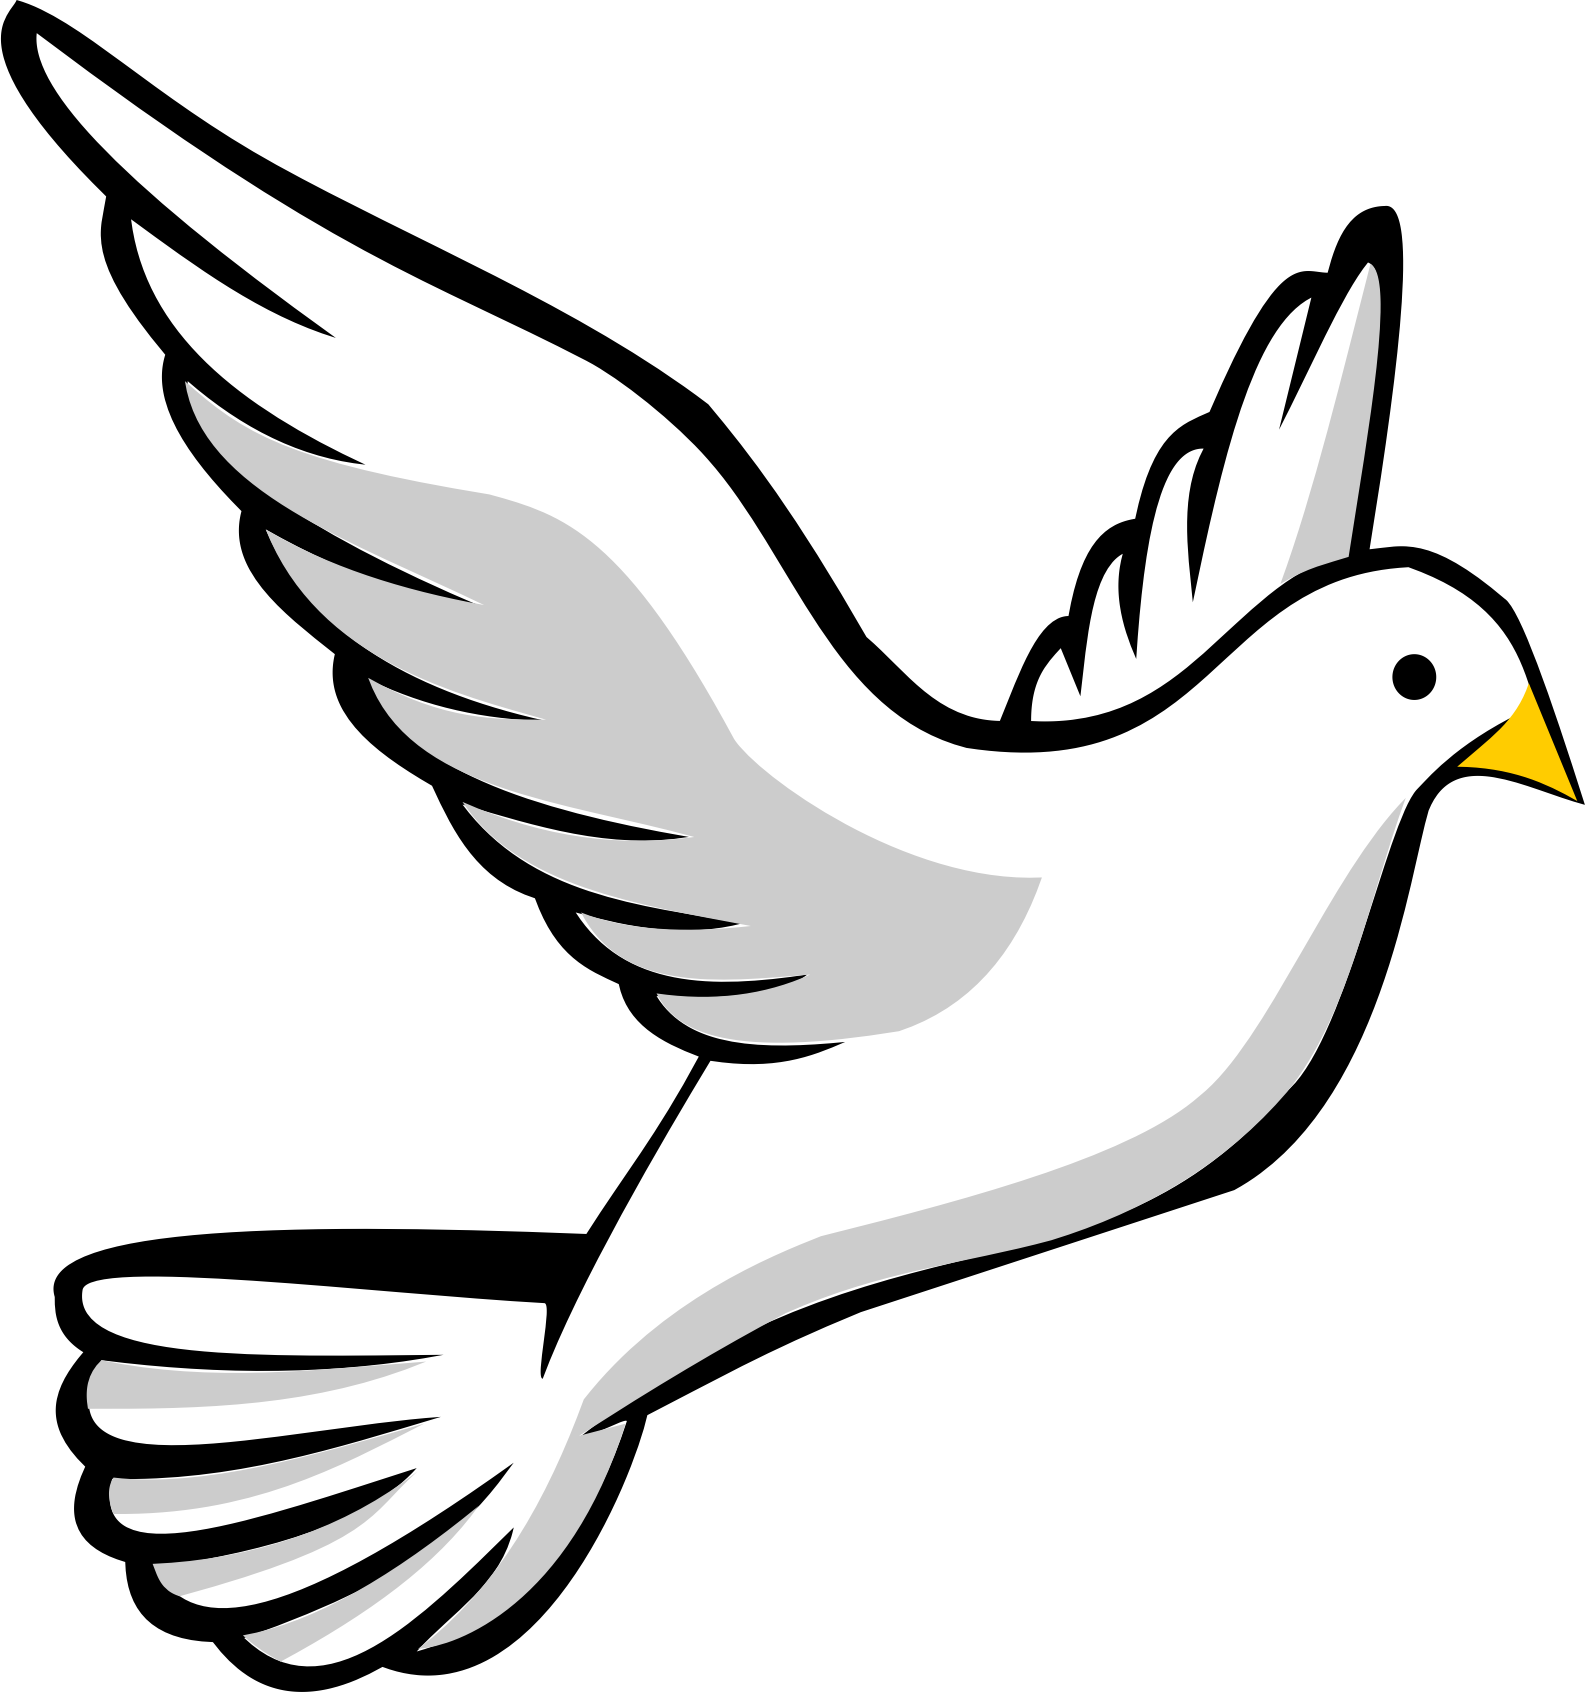 Free Stock Photo of Dove Vector Clipart - Public Domain ...